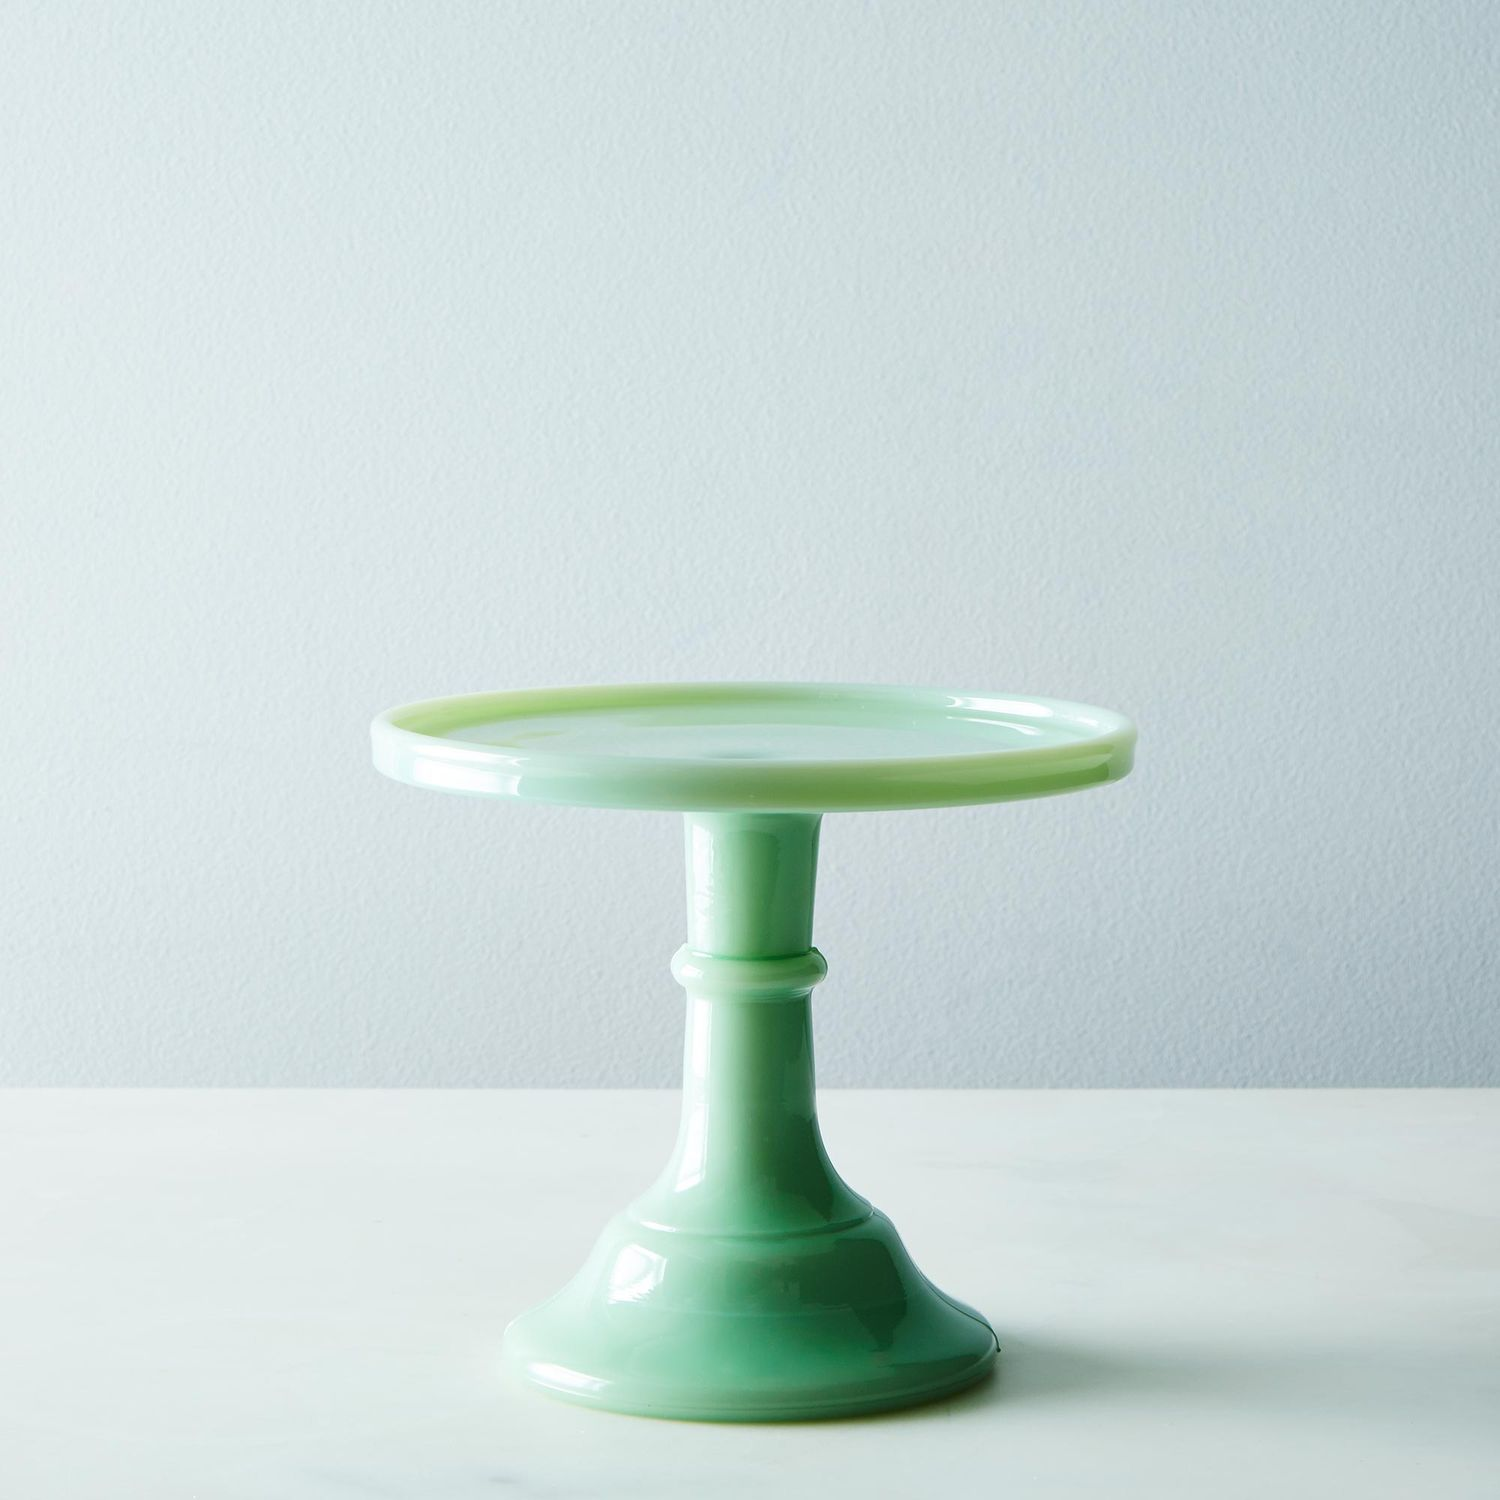 At Wayfair, we want to make sure you find the best home goods when you shop online. You have searched for pedestal cake stand and this page displays the closest product matches we have for pedestal cake stand to buy online.